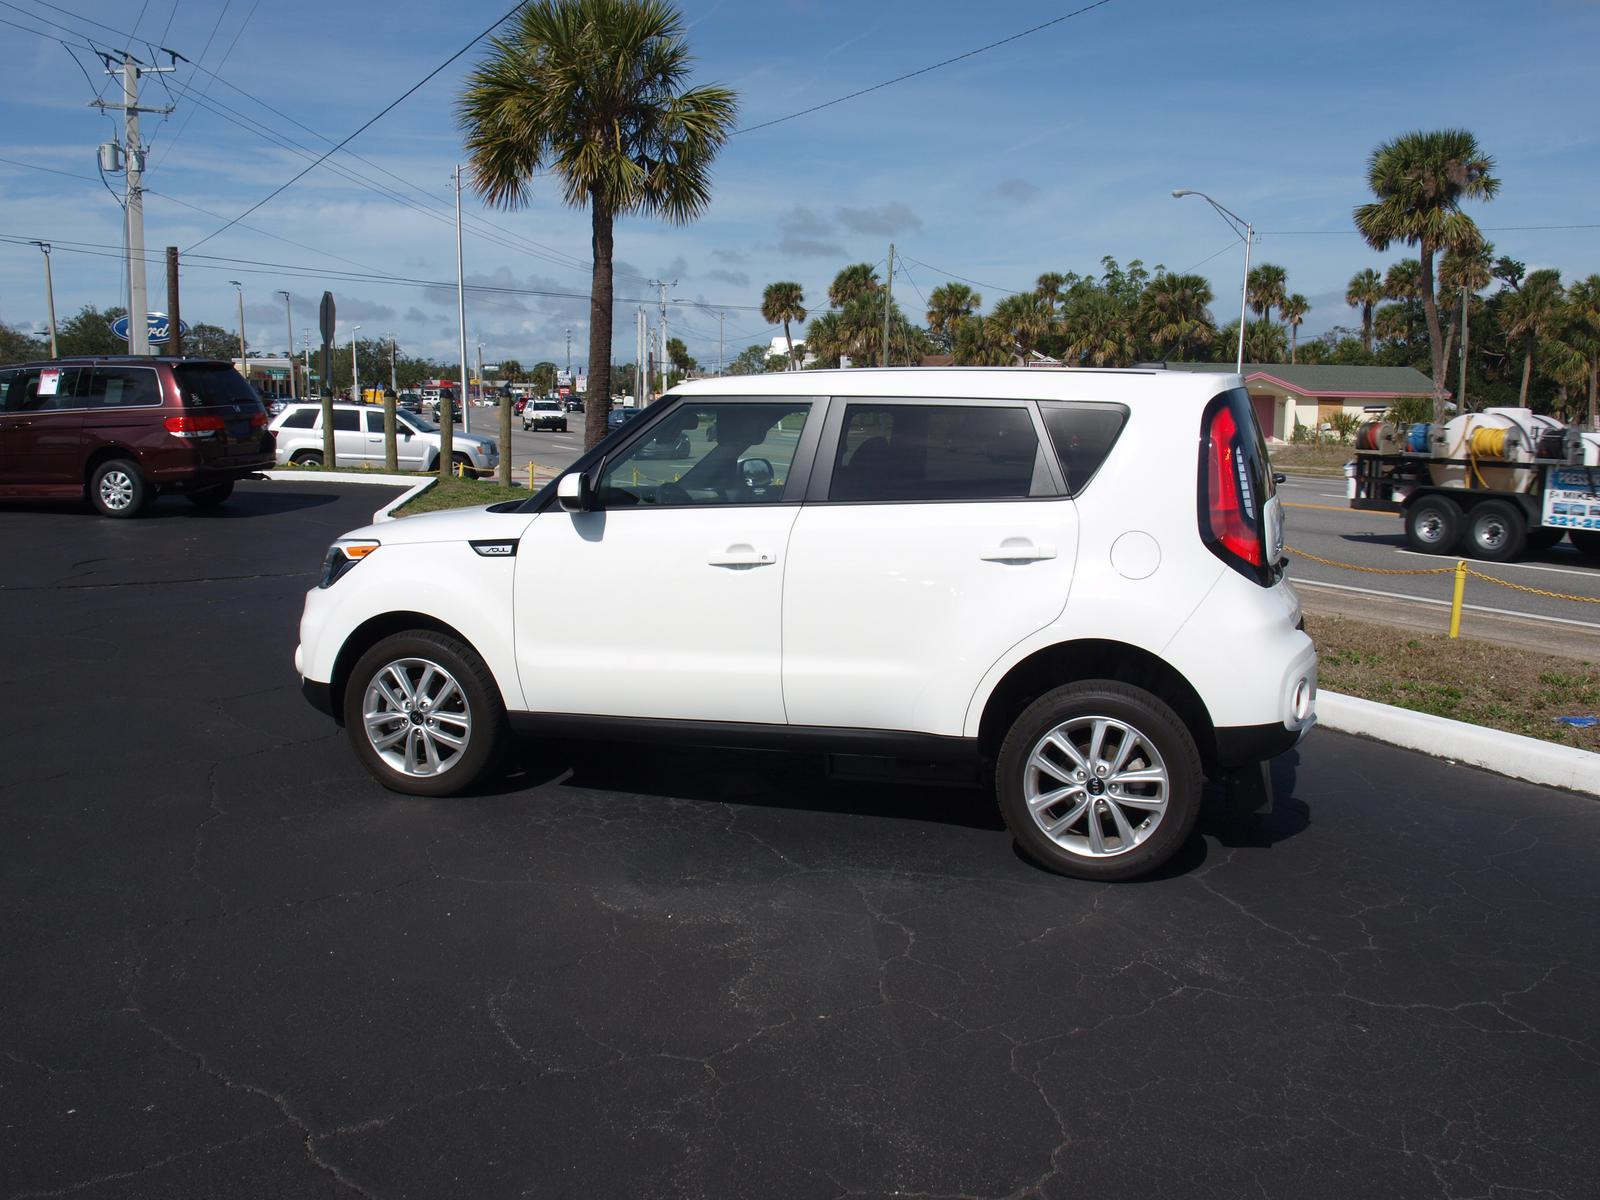 2017 Kia Soul With Manual Rear Entry Ramp System, Great On Gas And Easy To  Use Mobility Medical Equipment